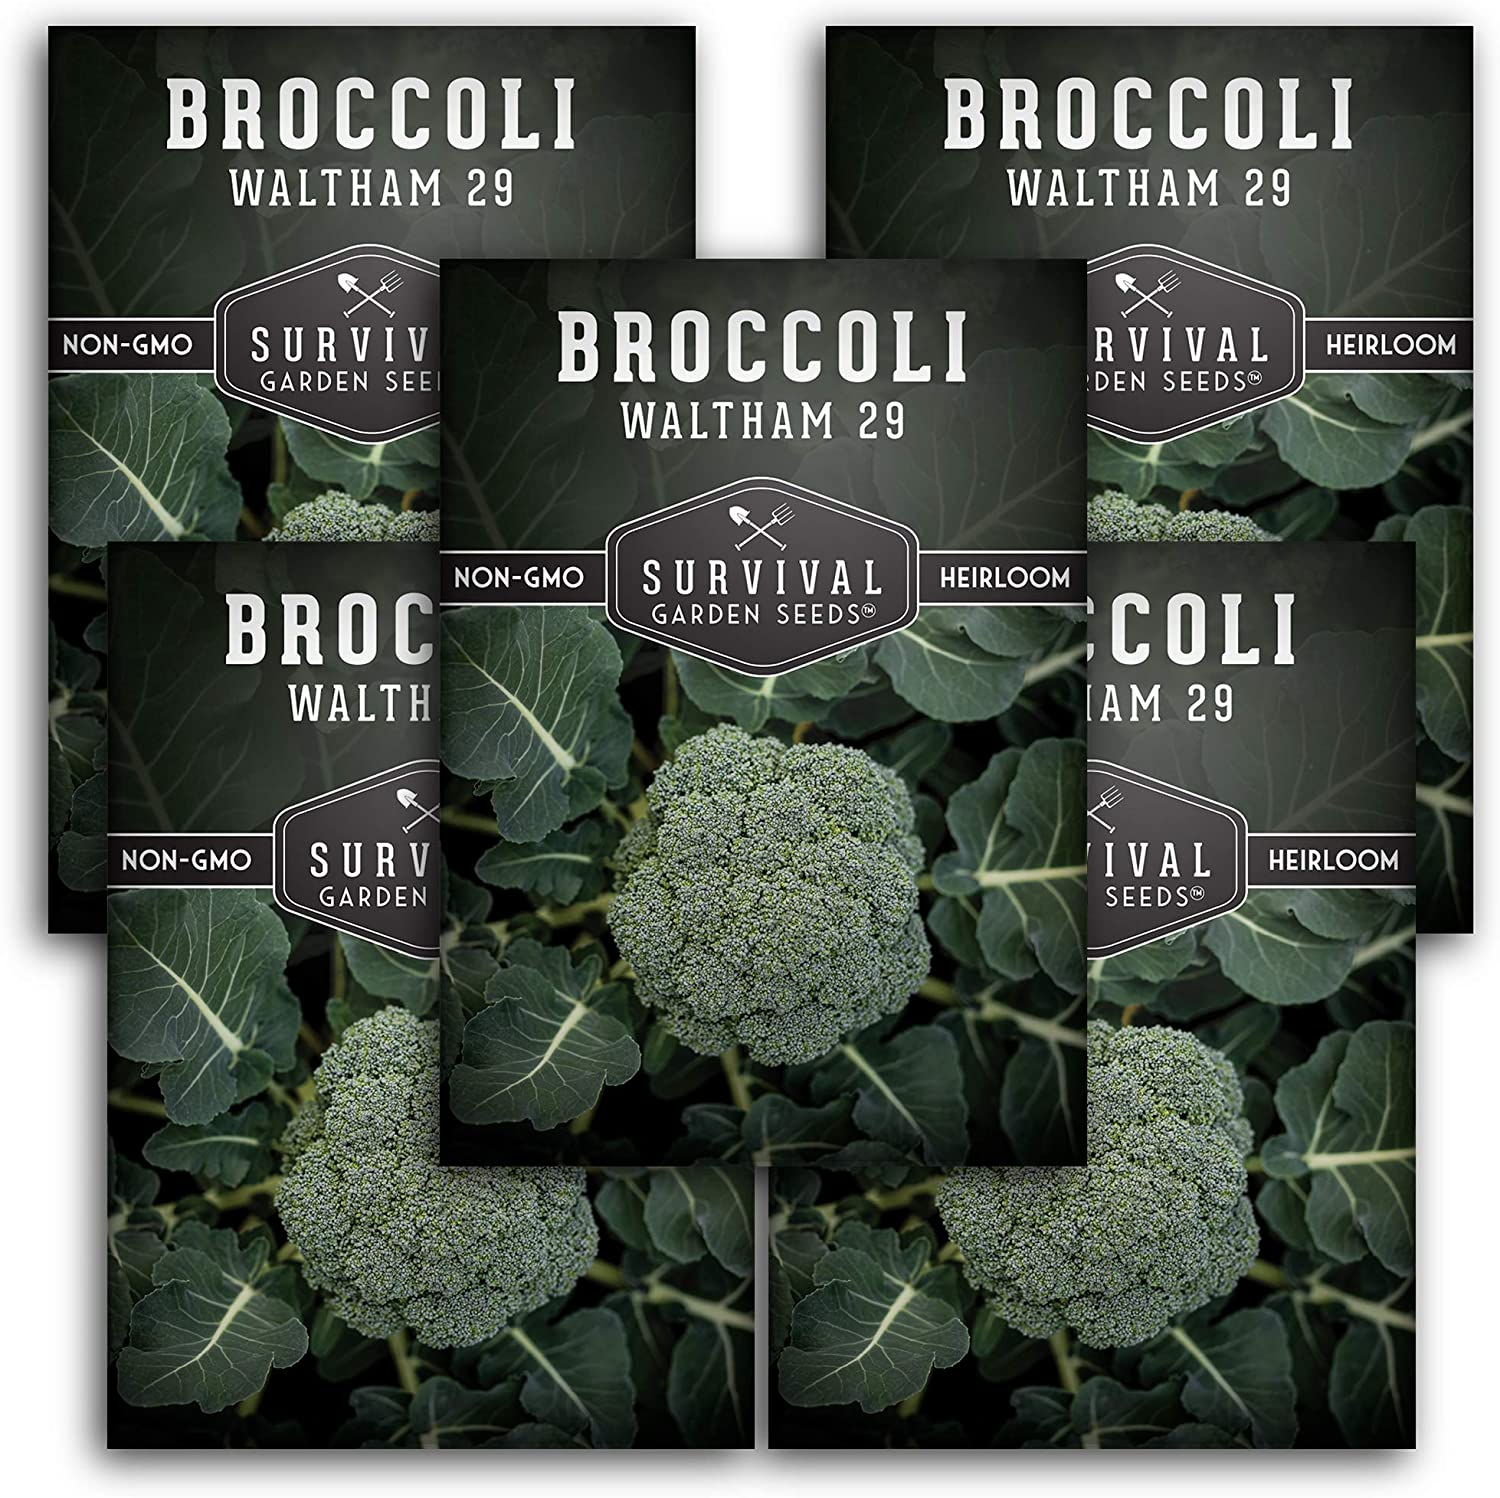 Survival Garden Seeds - Waltham 29 Broccoli Seed for Planting - Packet with Instructions to Plant and Grow in Your Home Vegetable Garden - Non-GMO Heirloom Variety